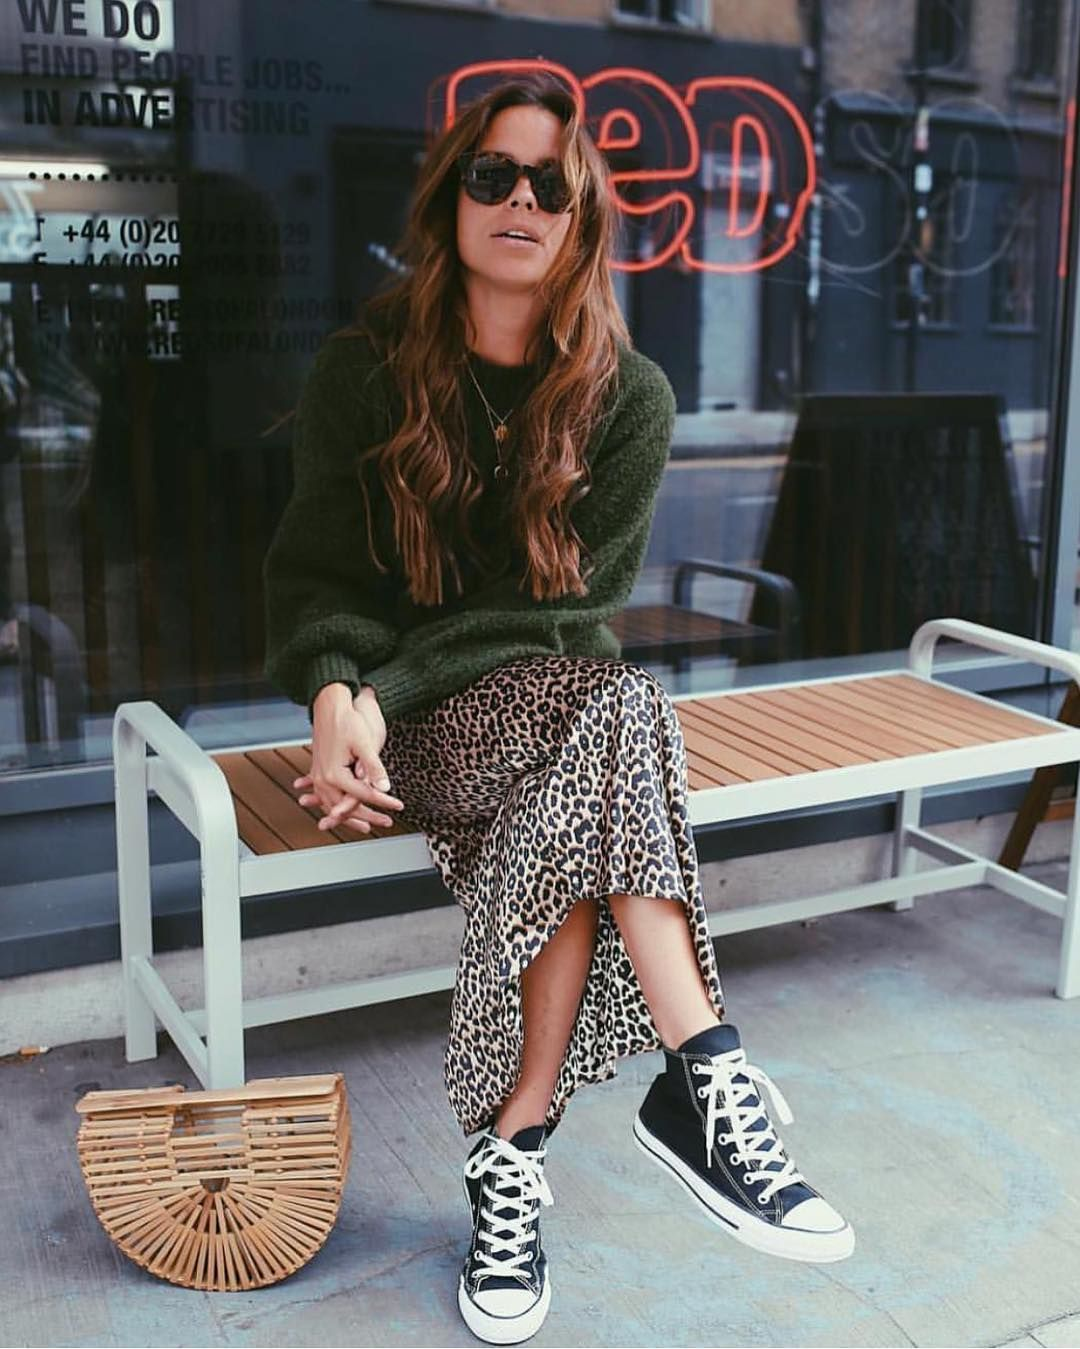 "Photo of BCN Street Style on Instagram: ""Printed ➕converse ✔️✔️✔️📷 @collyertwins Yay?"""